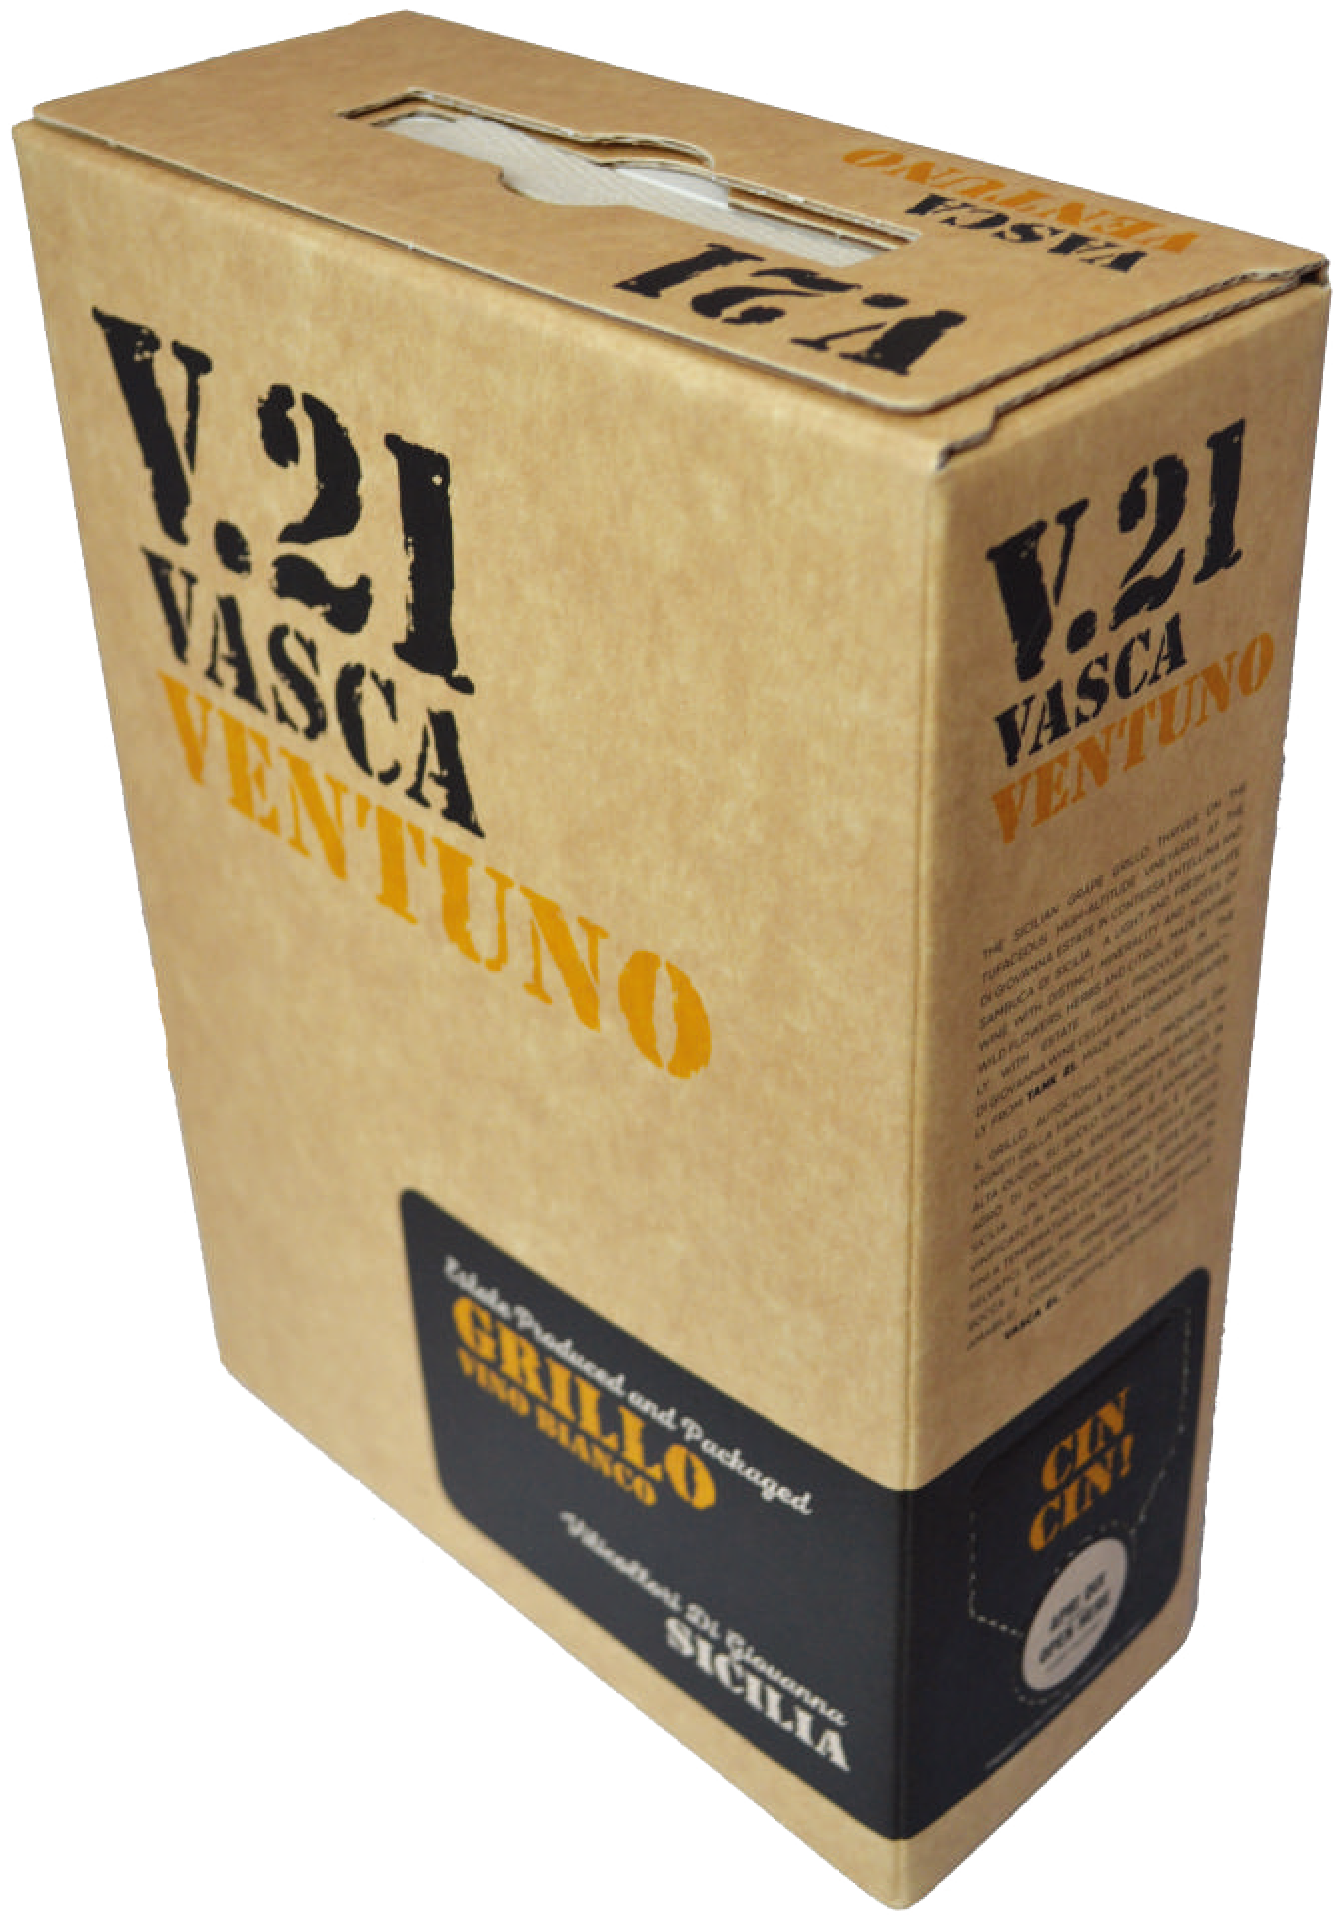 V.21 Vasca Ventuno Grillo Vino Bianco 3000ml Bag in Box 2016